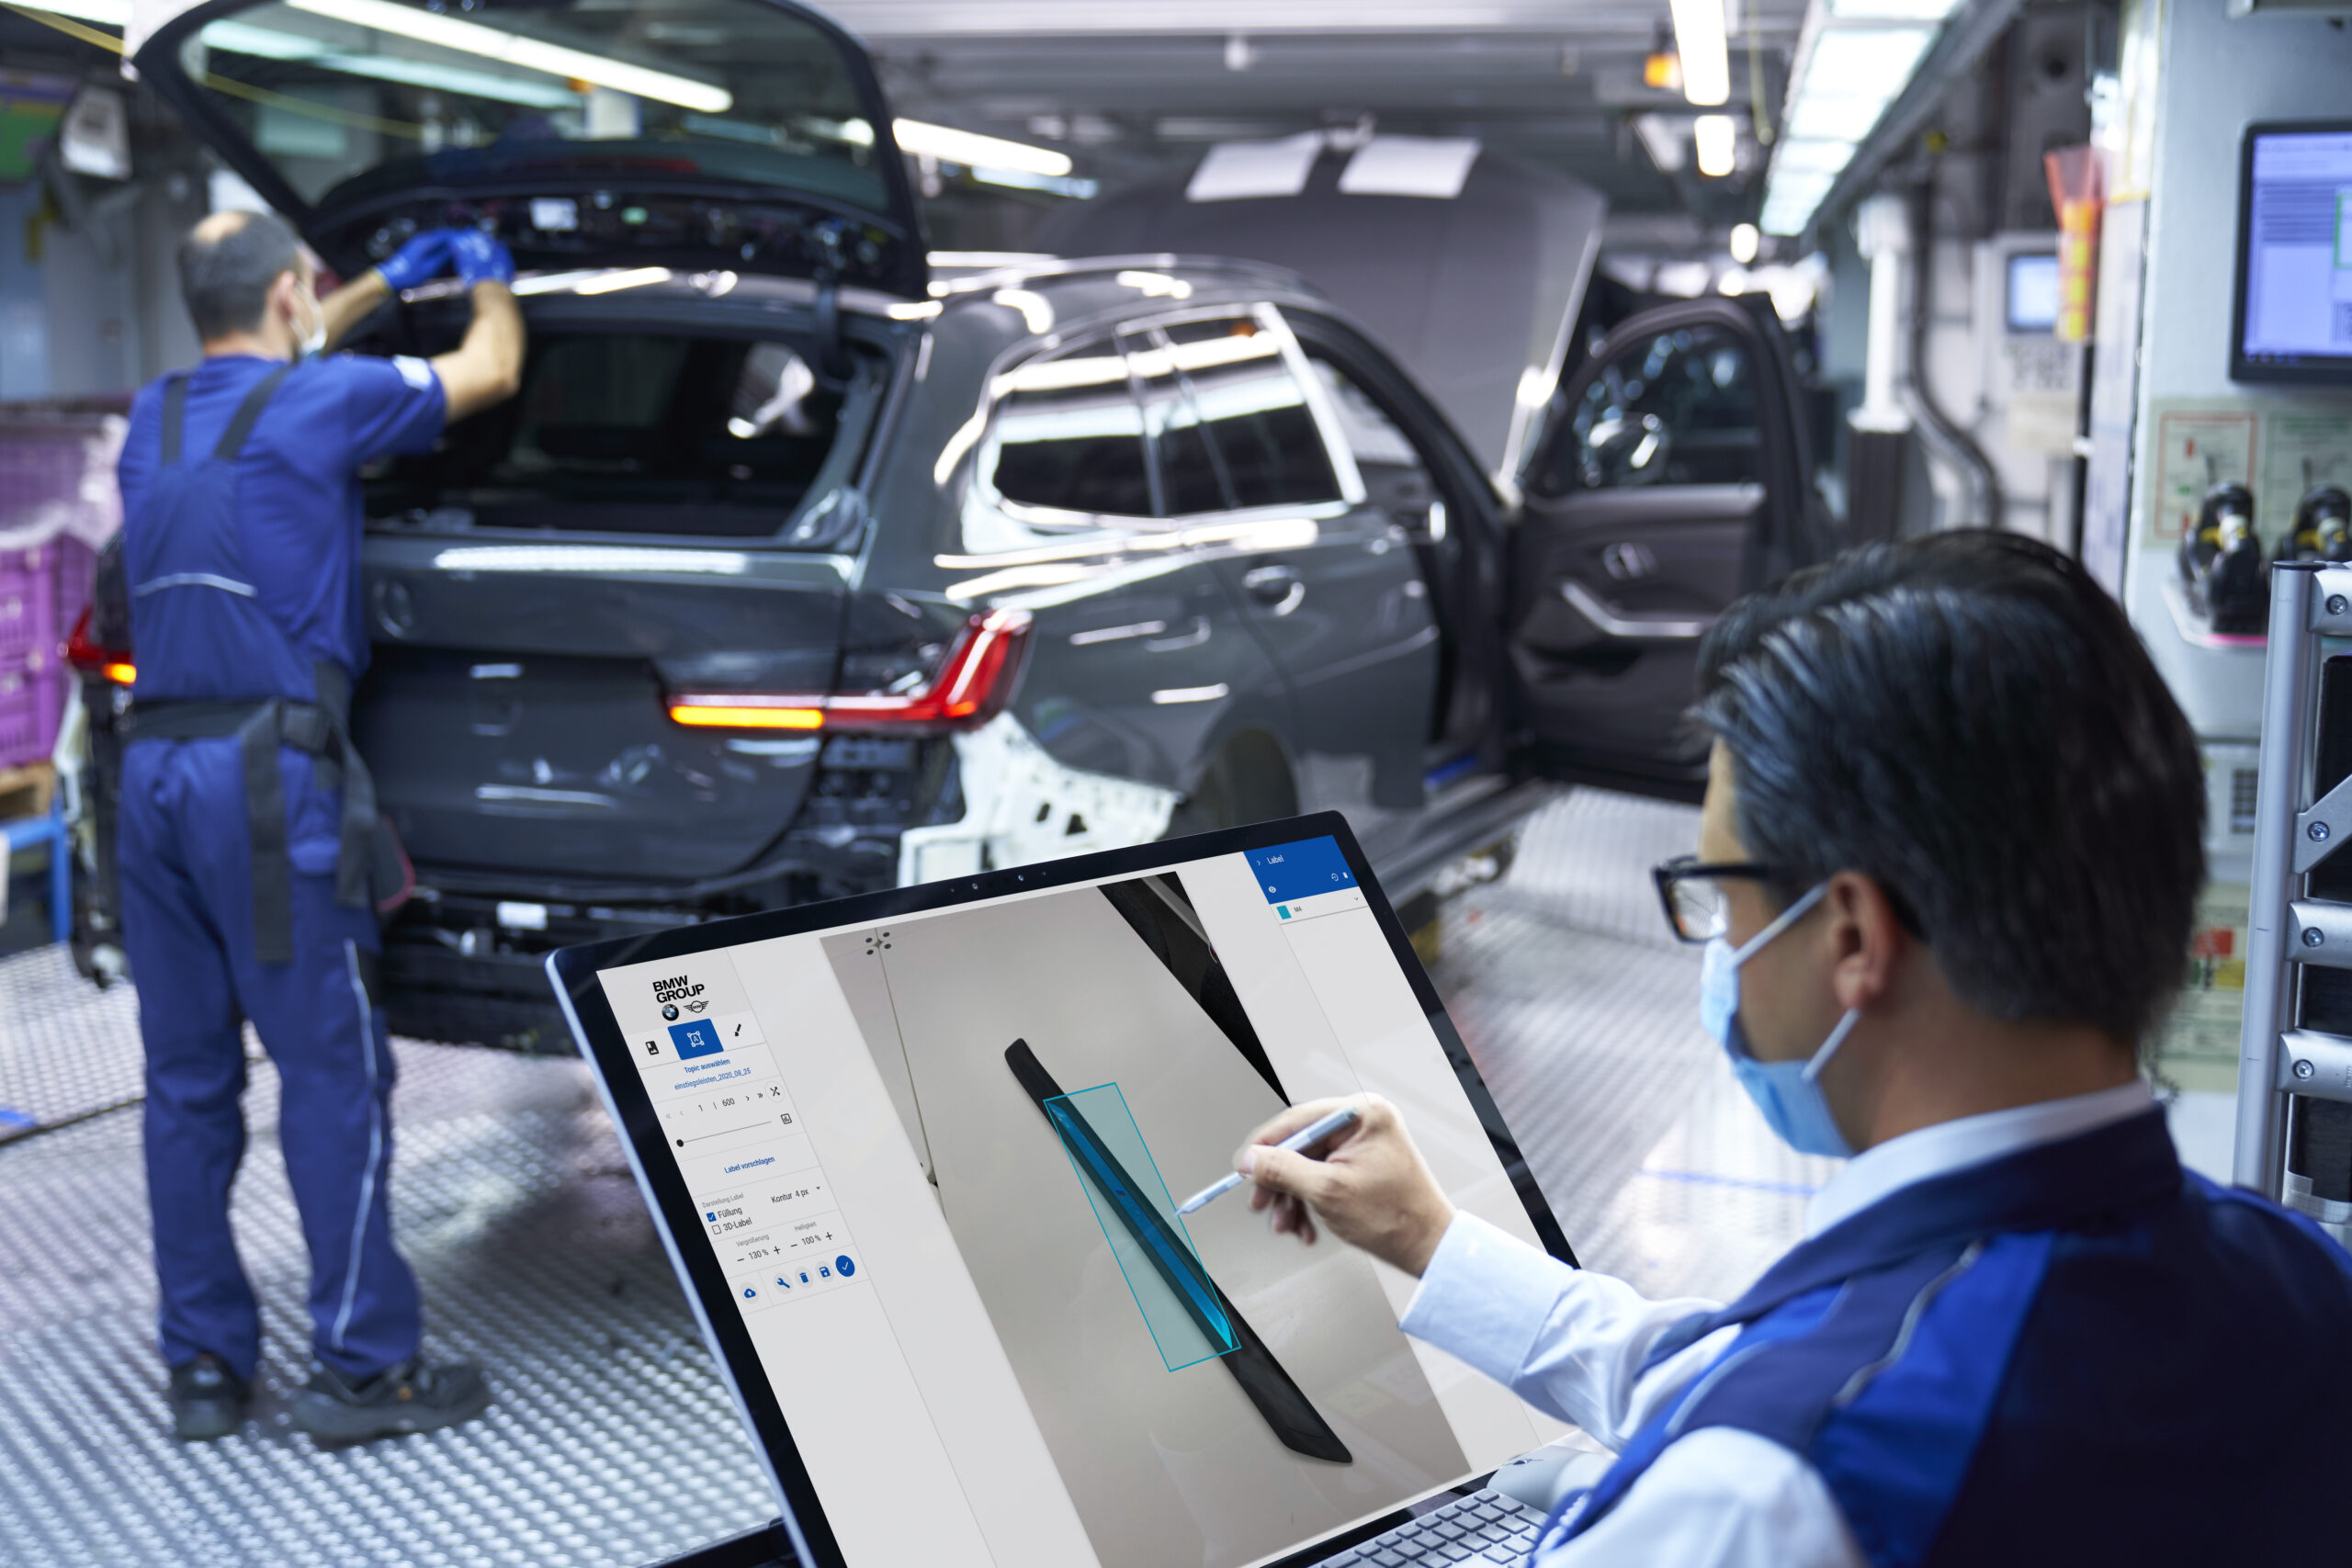 BMW publishes software package for AI object recognition apps